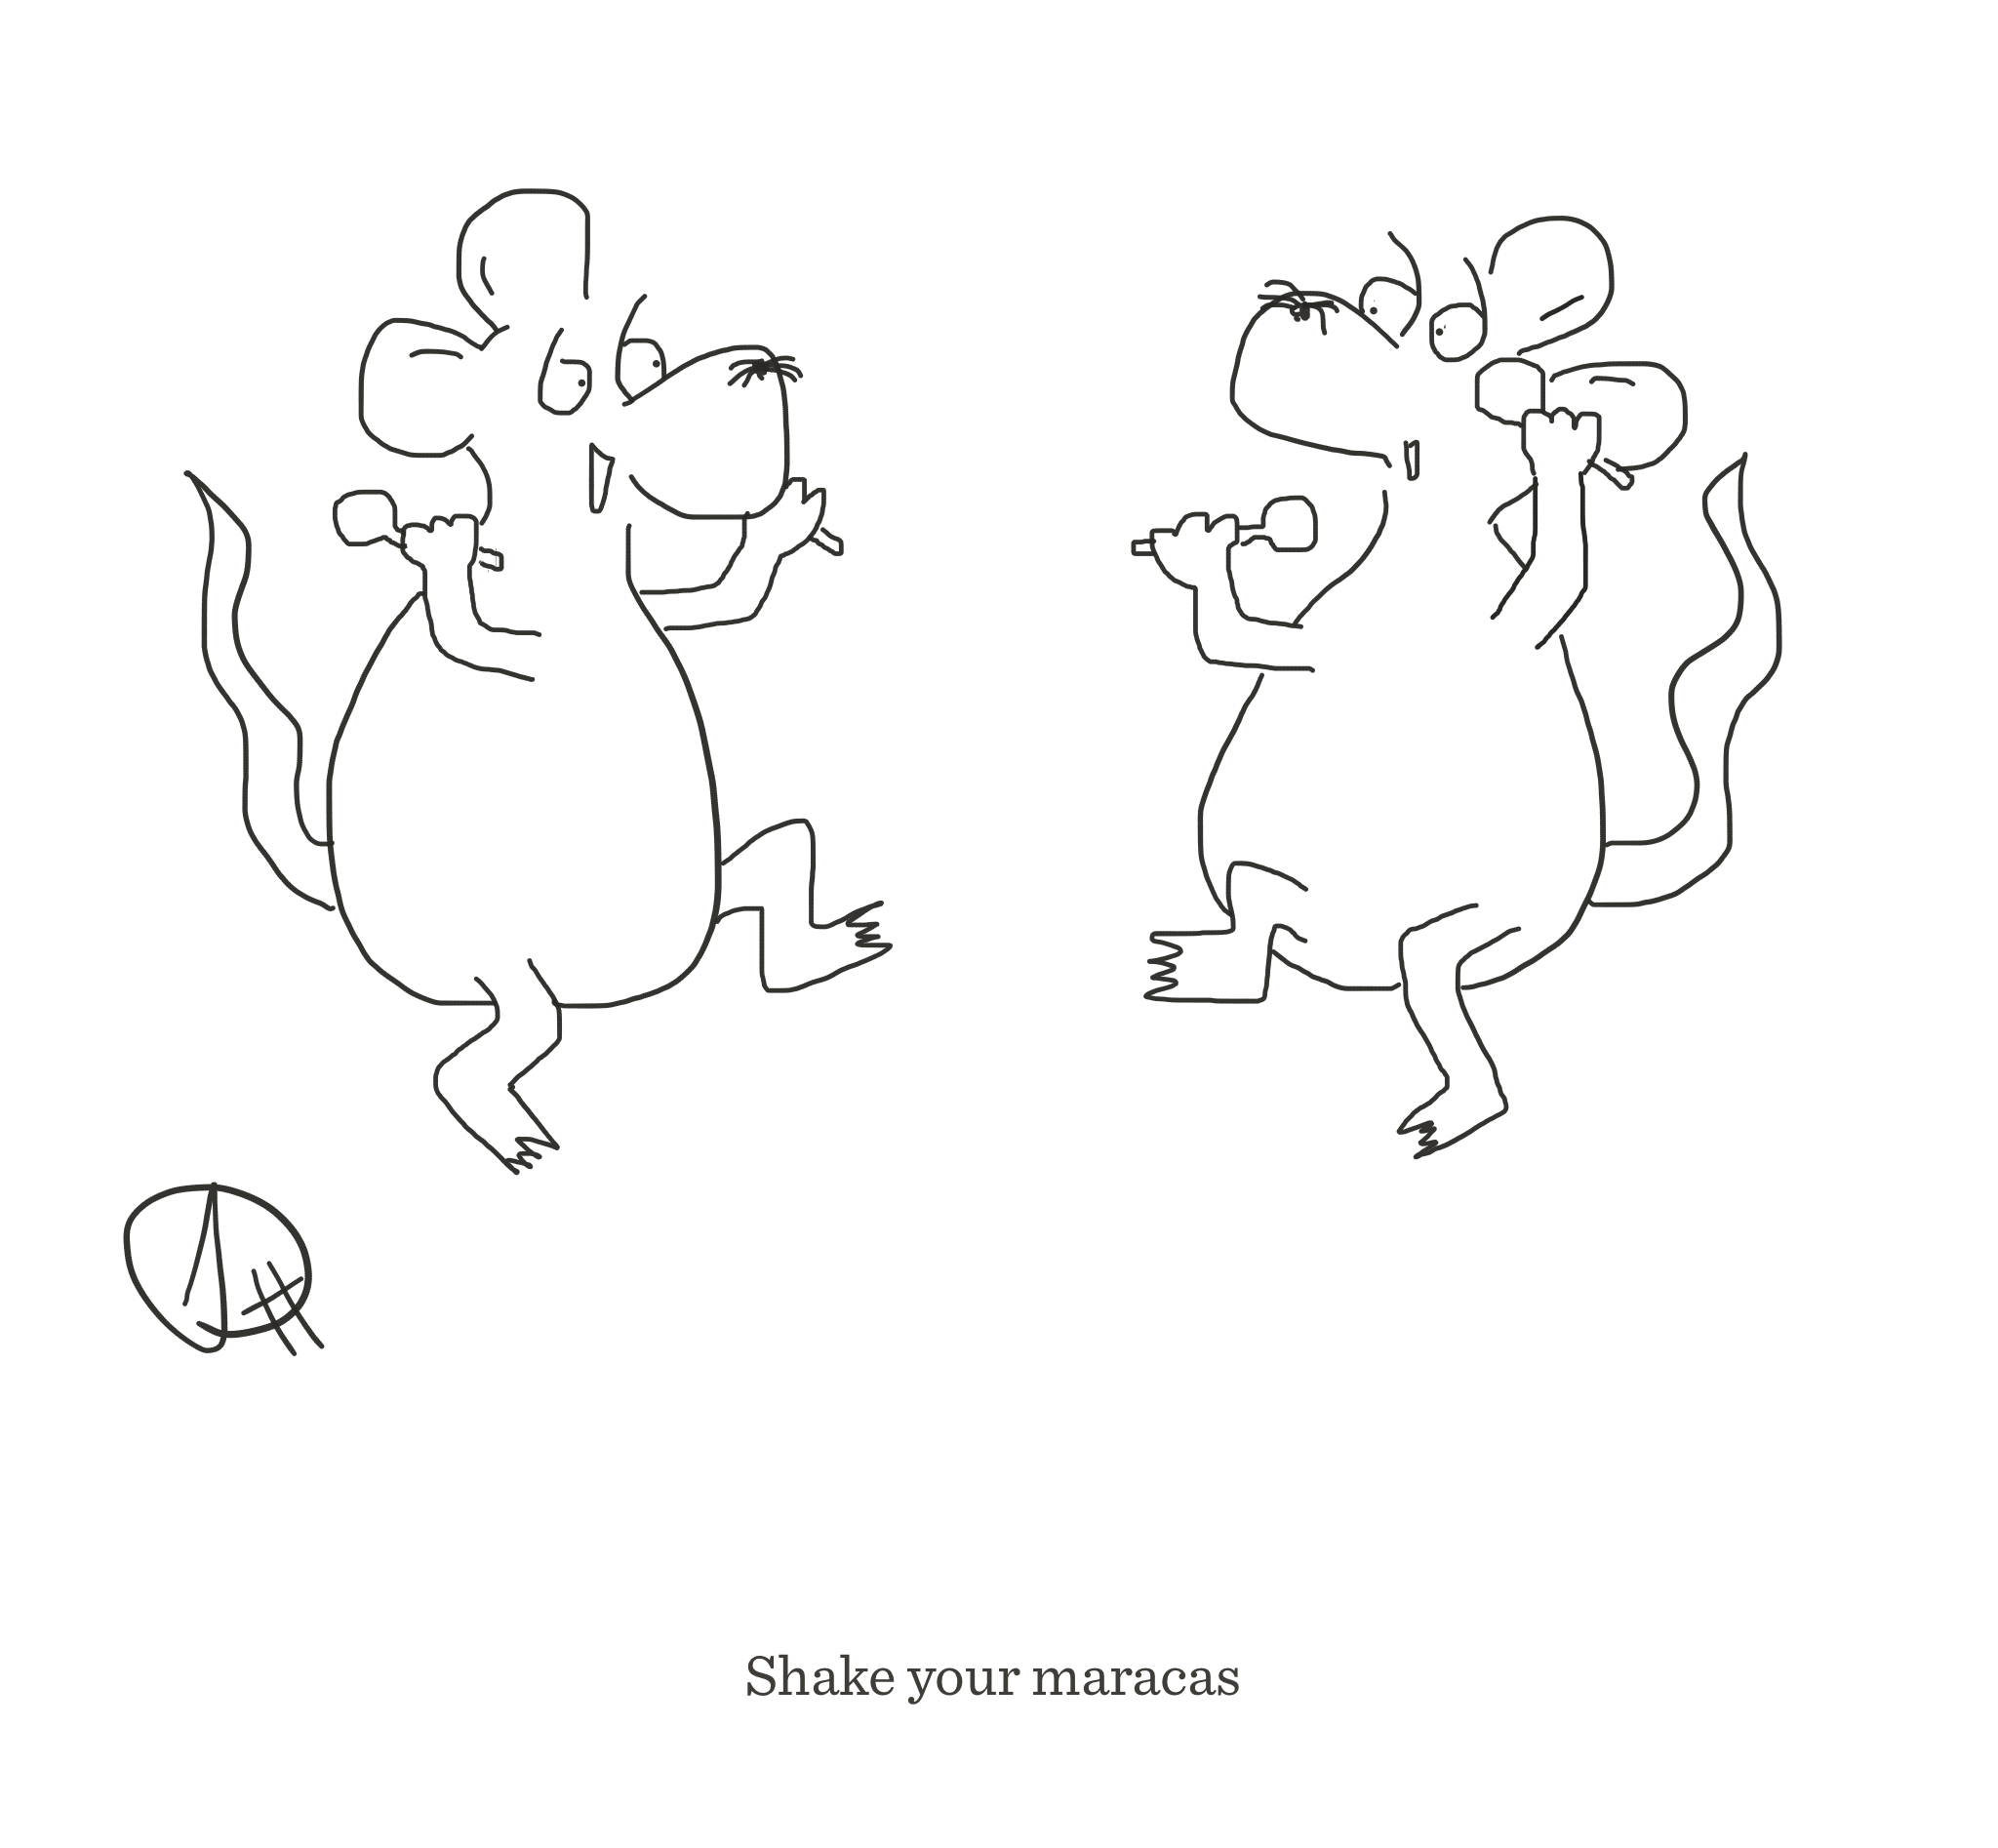 Shake your maracas, The Happy Rat cartoon